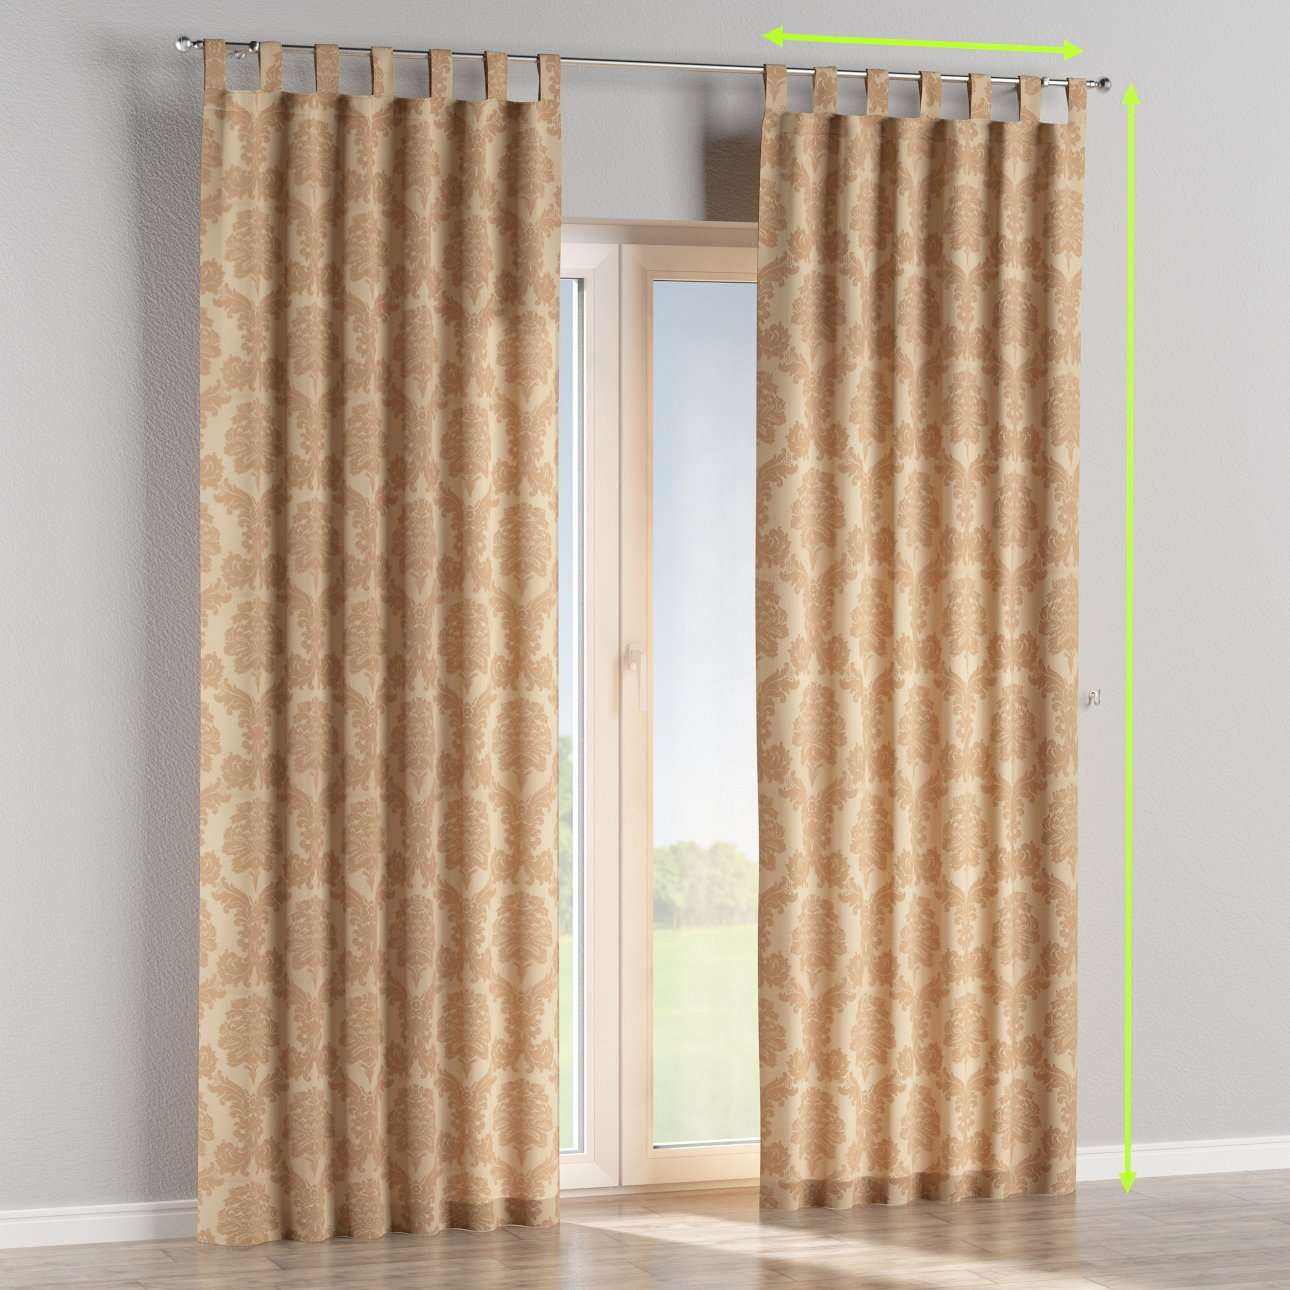 Tab top lined curtains in collection Damasco, fabric: 613-04